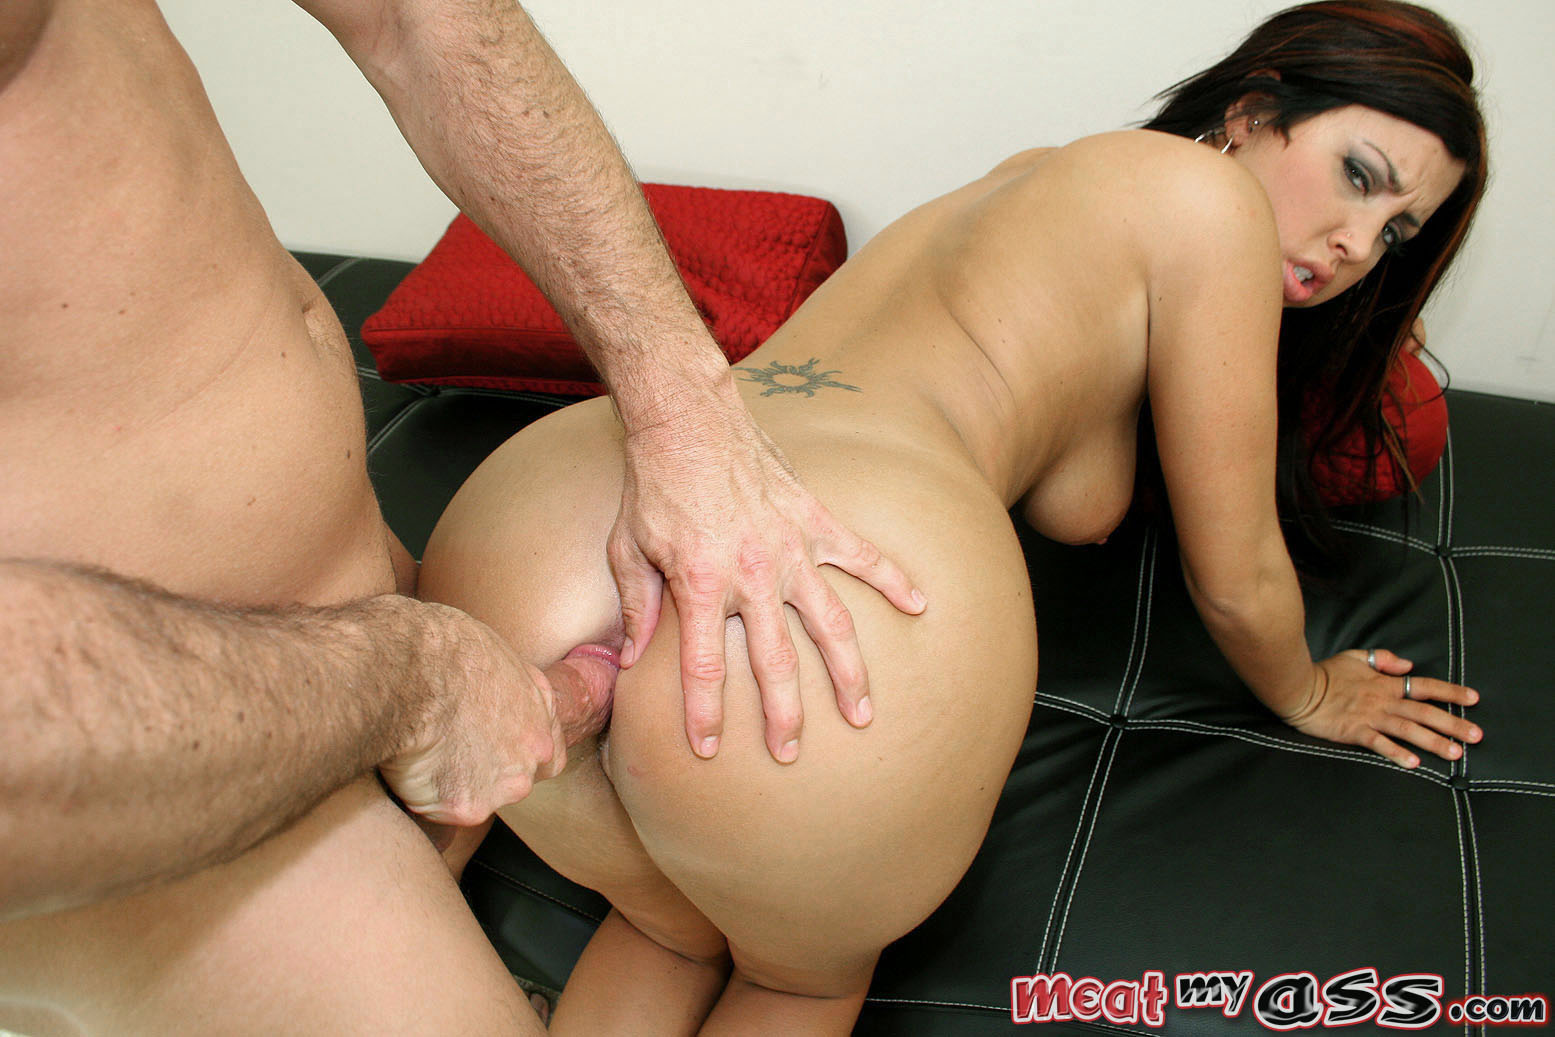 Meat My Ass - First time anal stretching at AmateurIndex.com